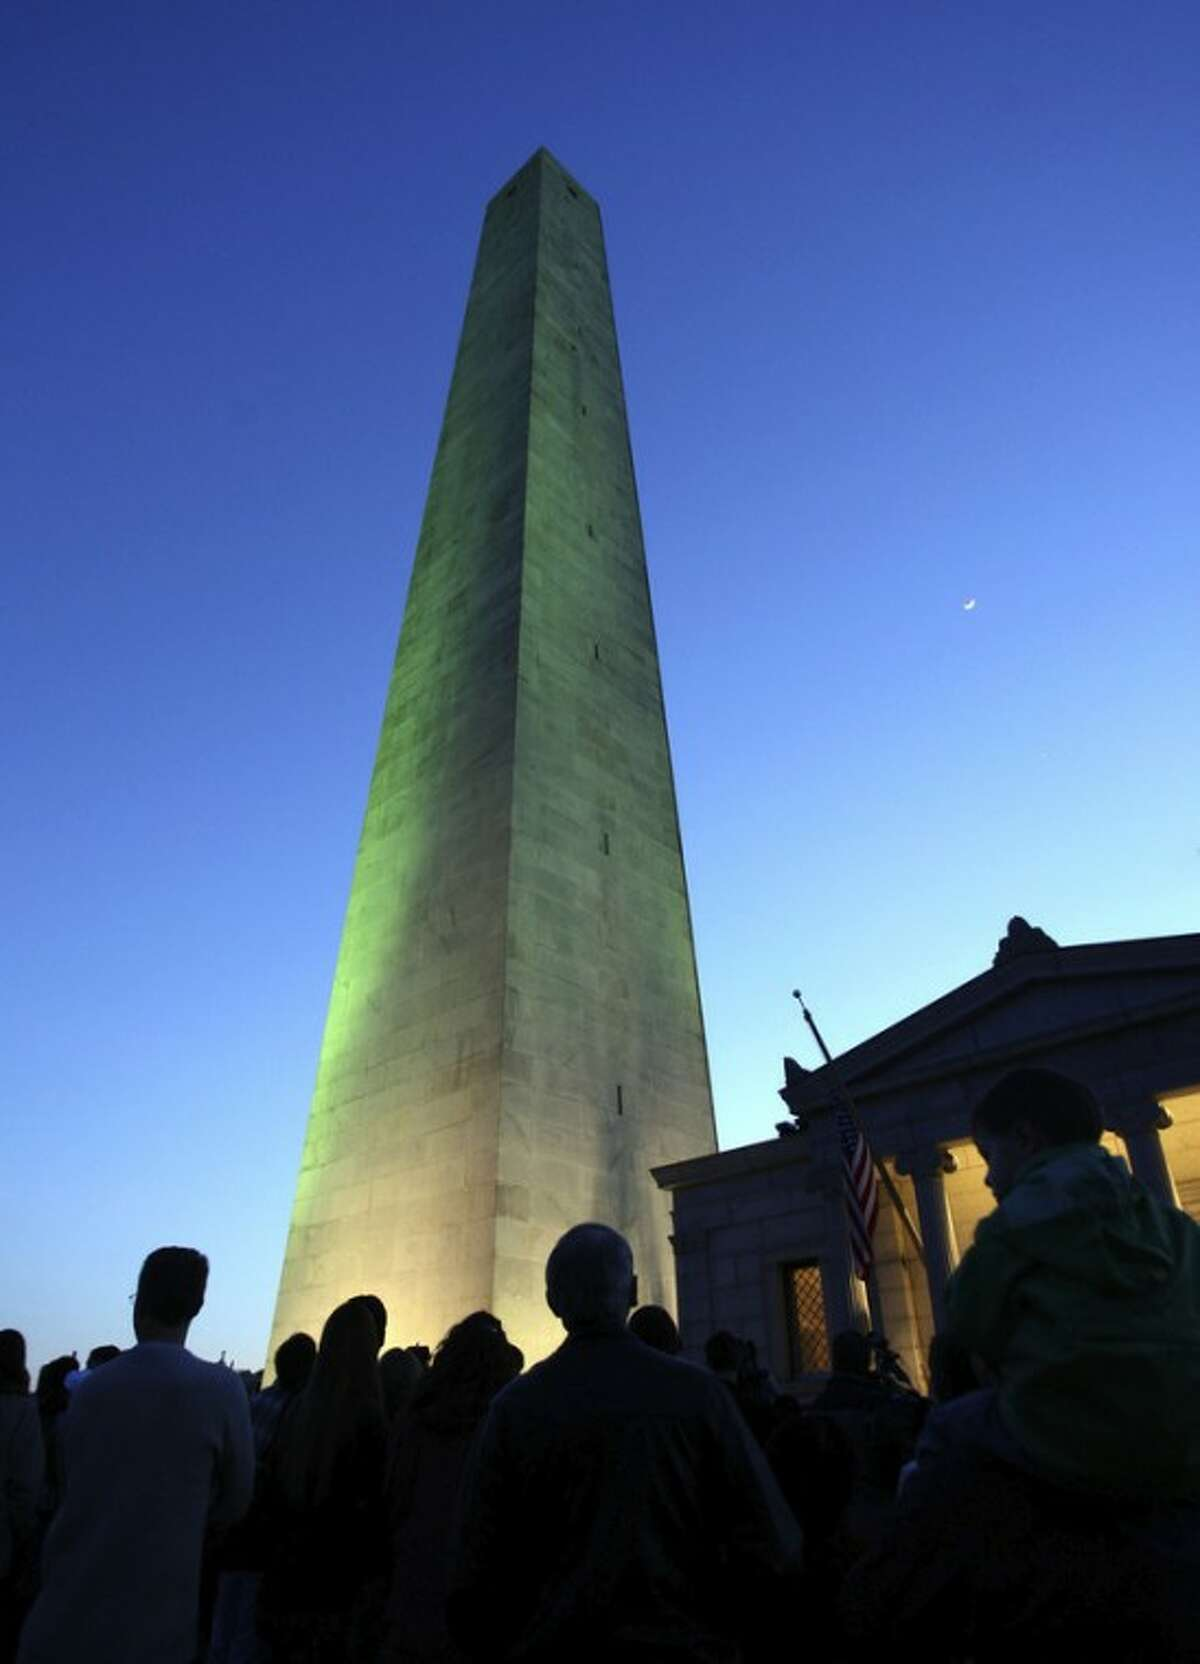 FILE - In a Friday, April 20, 2007 file photo, the upper portion and main shaft of the 221-foot tall Bunker Hill Monument is illuminated, in Charlestown, Mass. Boston's Battle of Bunker Hill monument didn't get built until the 1840s. As Americans gather at war memorials, battle monuments and military cemeteries to honor veterans, Niagara University history professor Thomas Chambers points out that such places were belatedly established for the soldiers who fought in the nation's earliest wars. (AP Photo/Mary Schwalm, File)